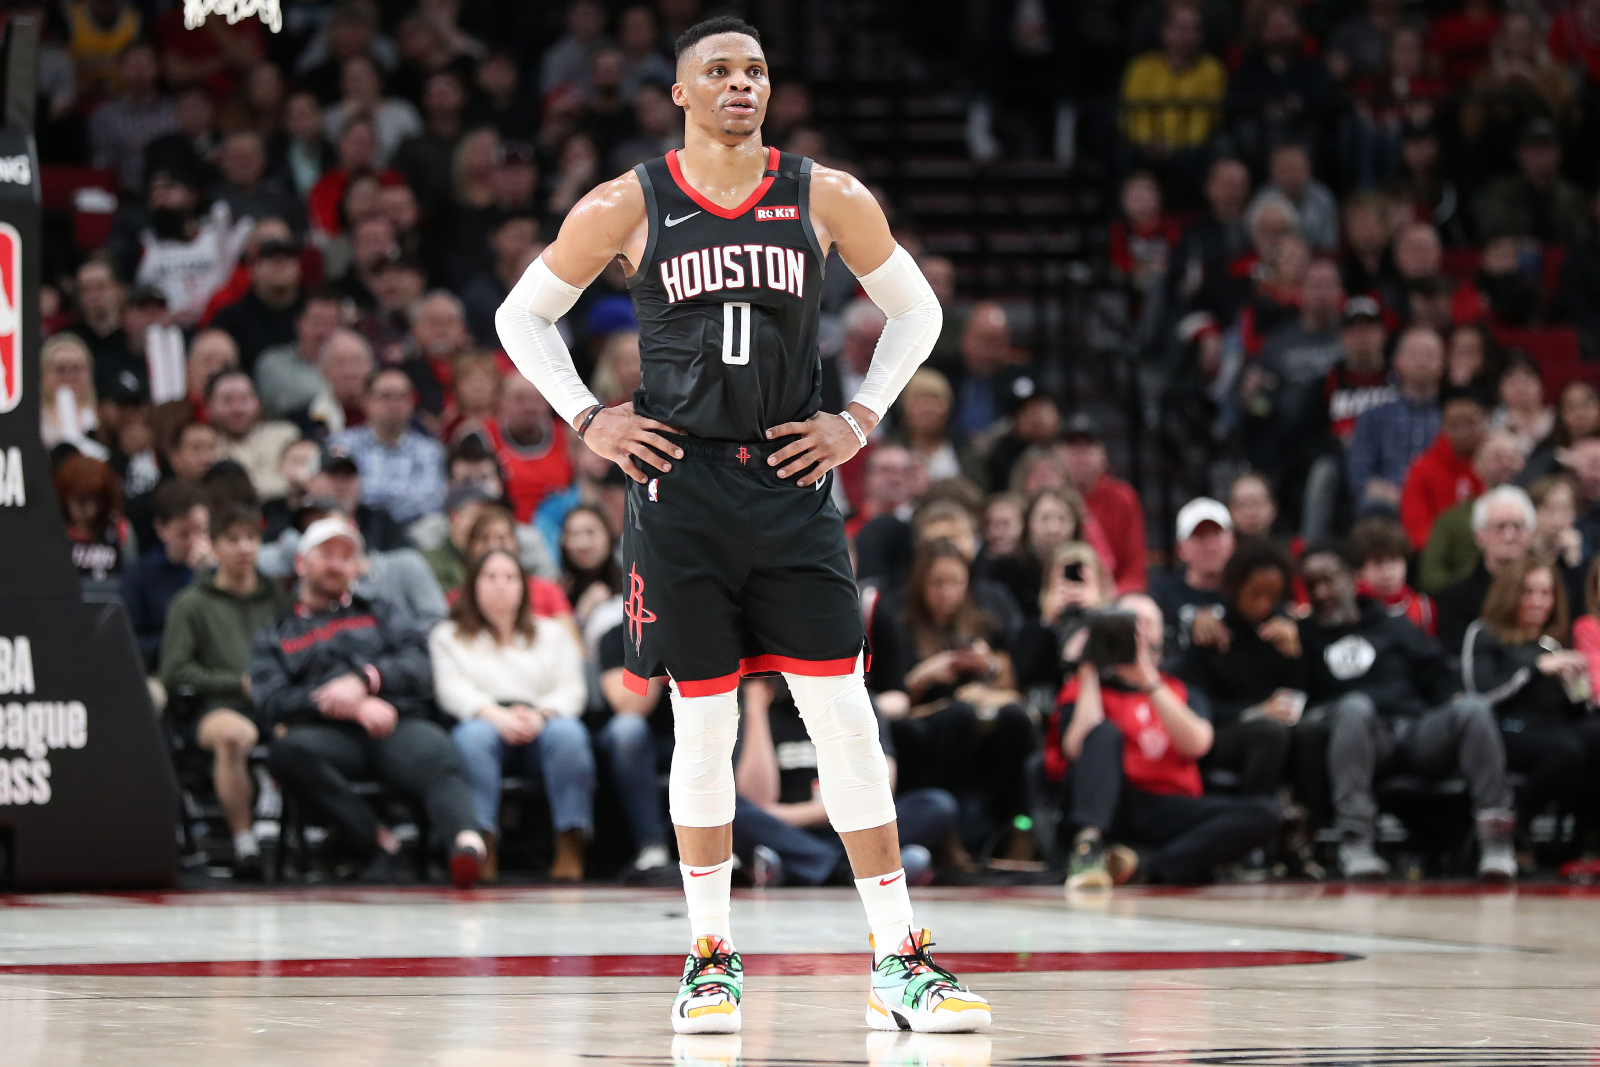 Russell Westbrook and the Houston Rockets will soon take the court again. Westbrook now has a big reason to want to dominate in the bubble.